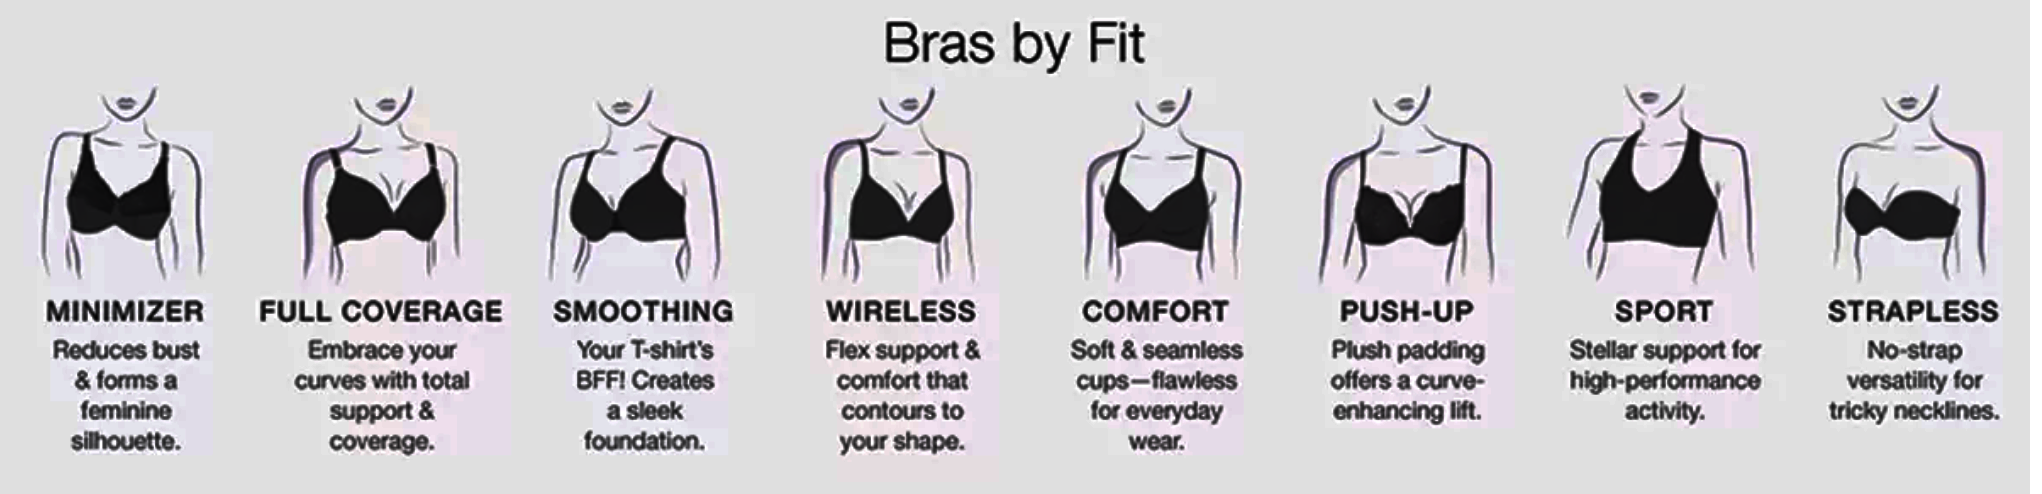 bras by fit at sexy bedroom lingerie